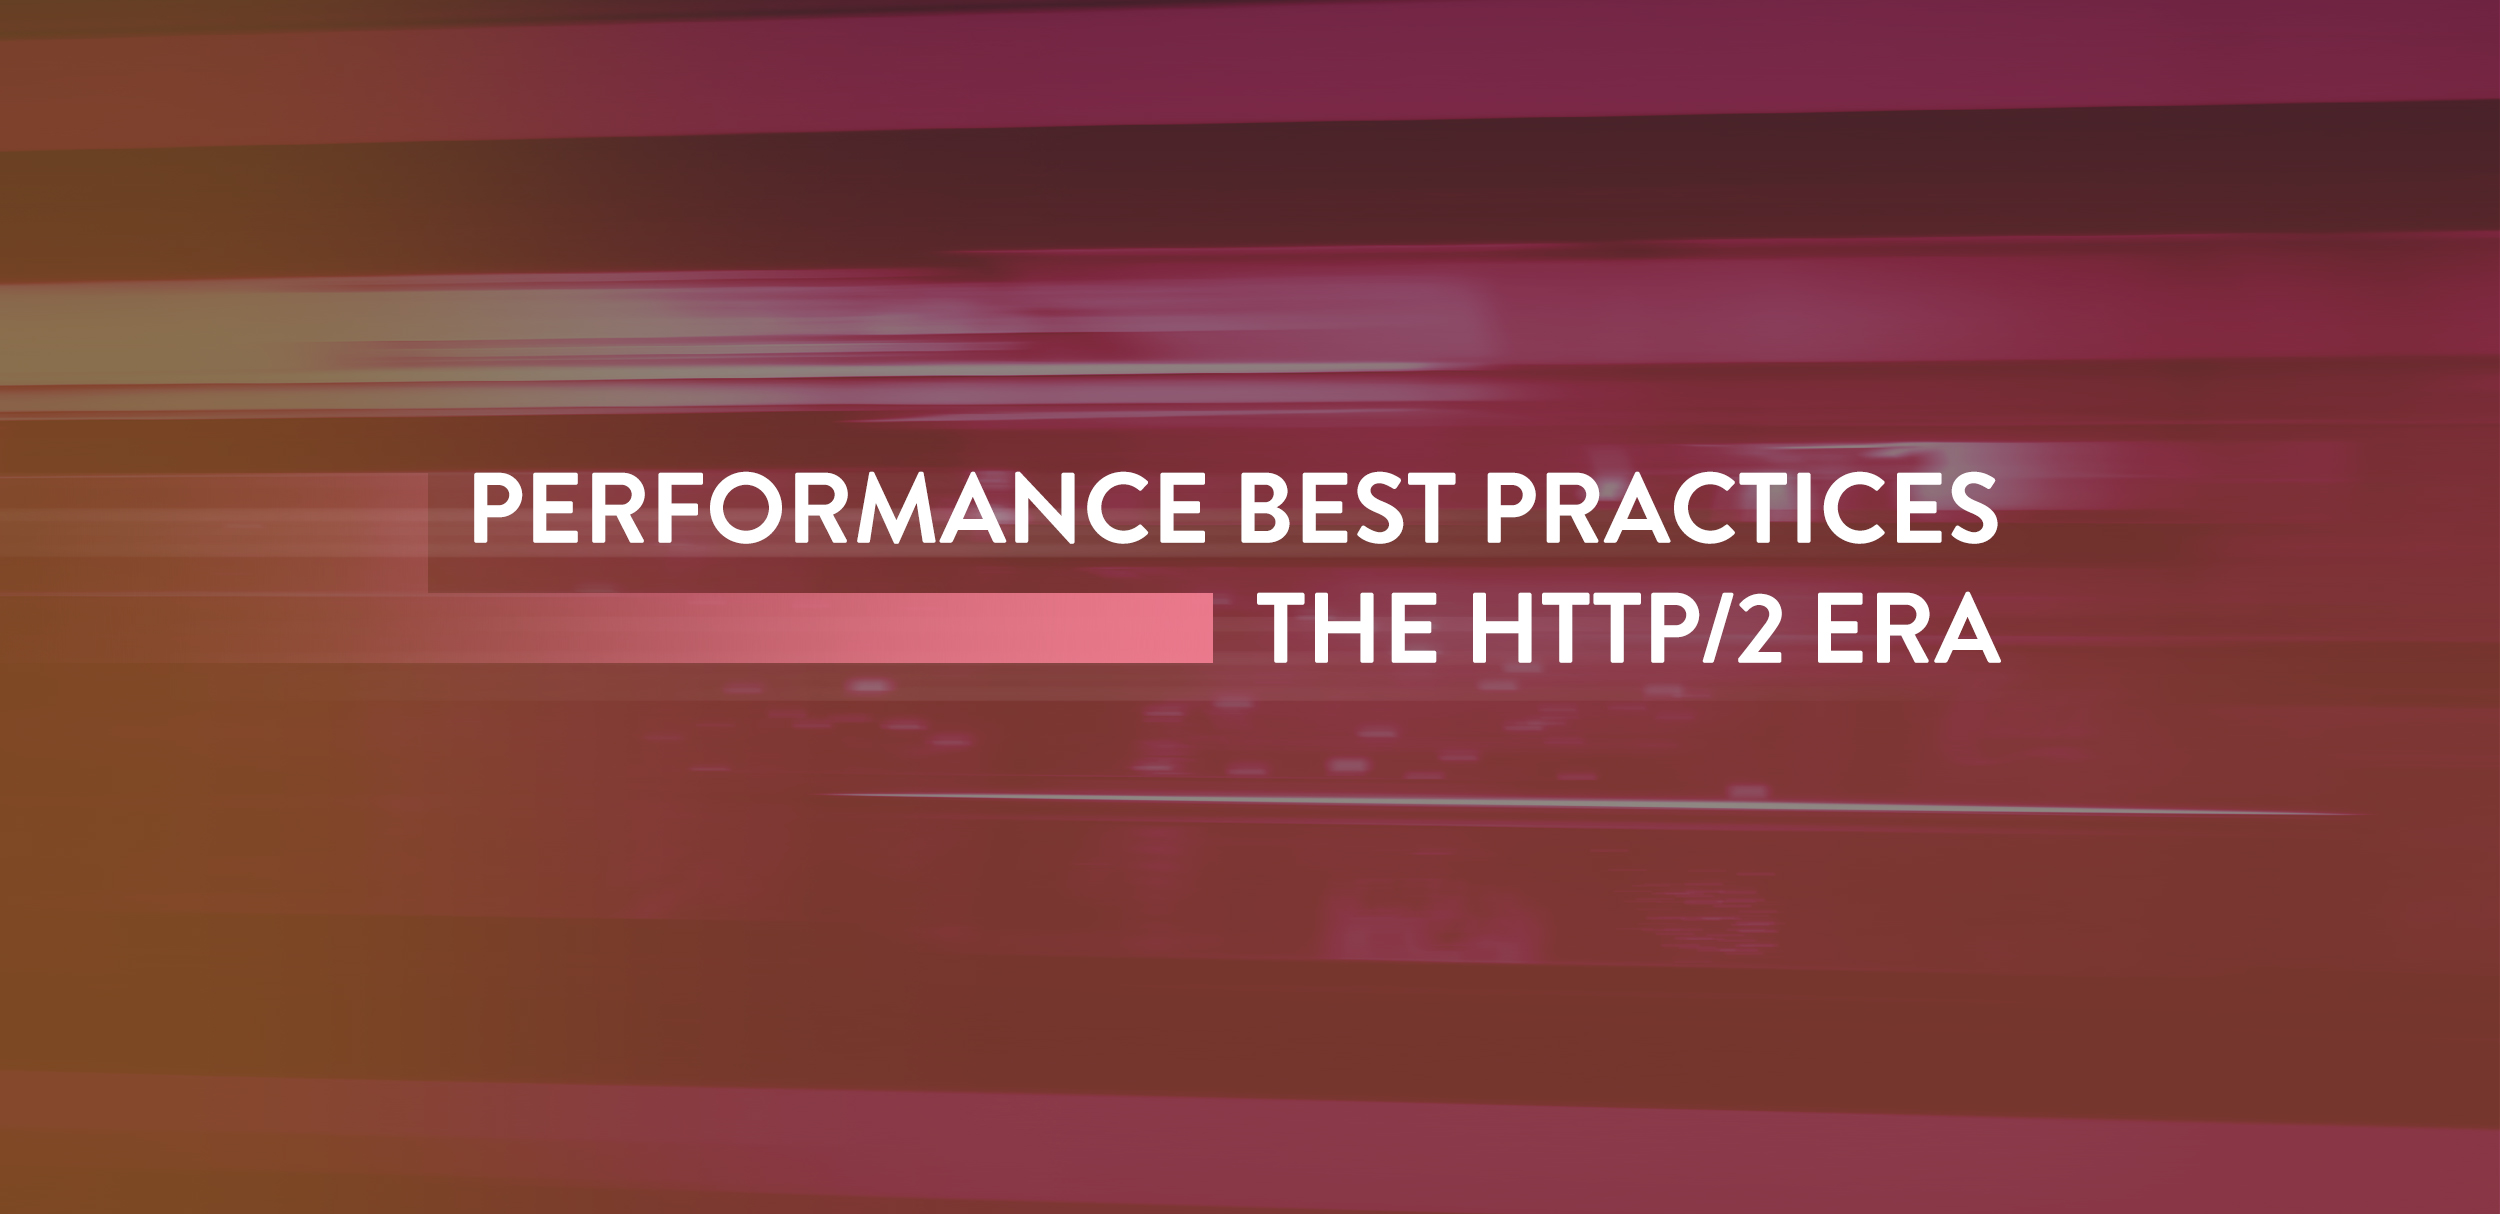 Performance Best Practices in the HTTP/2 Era